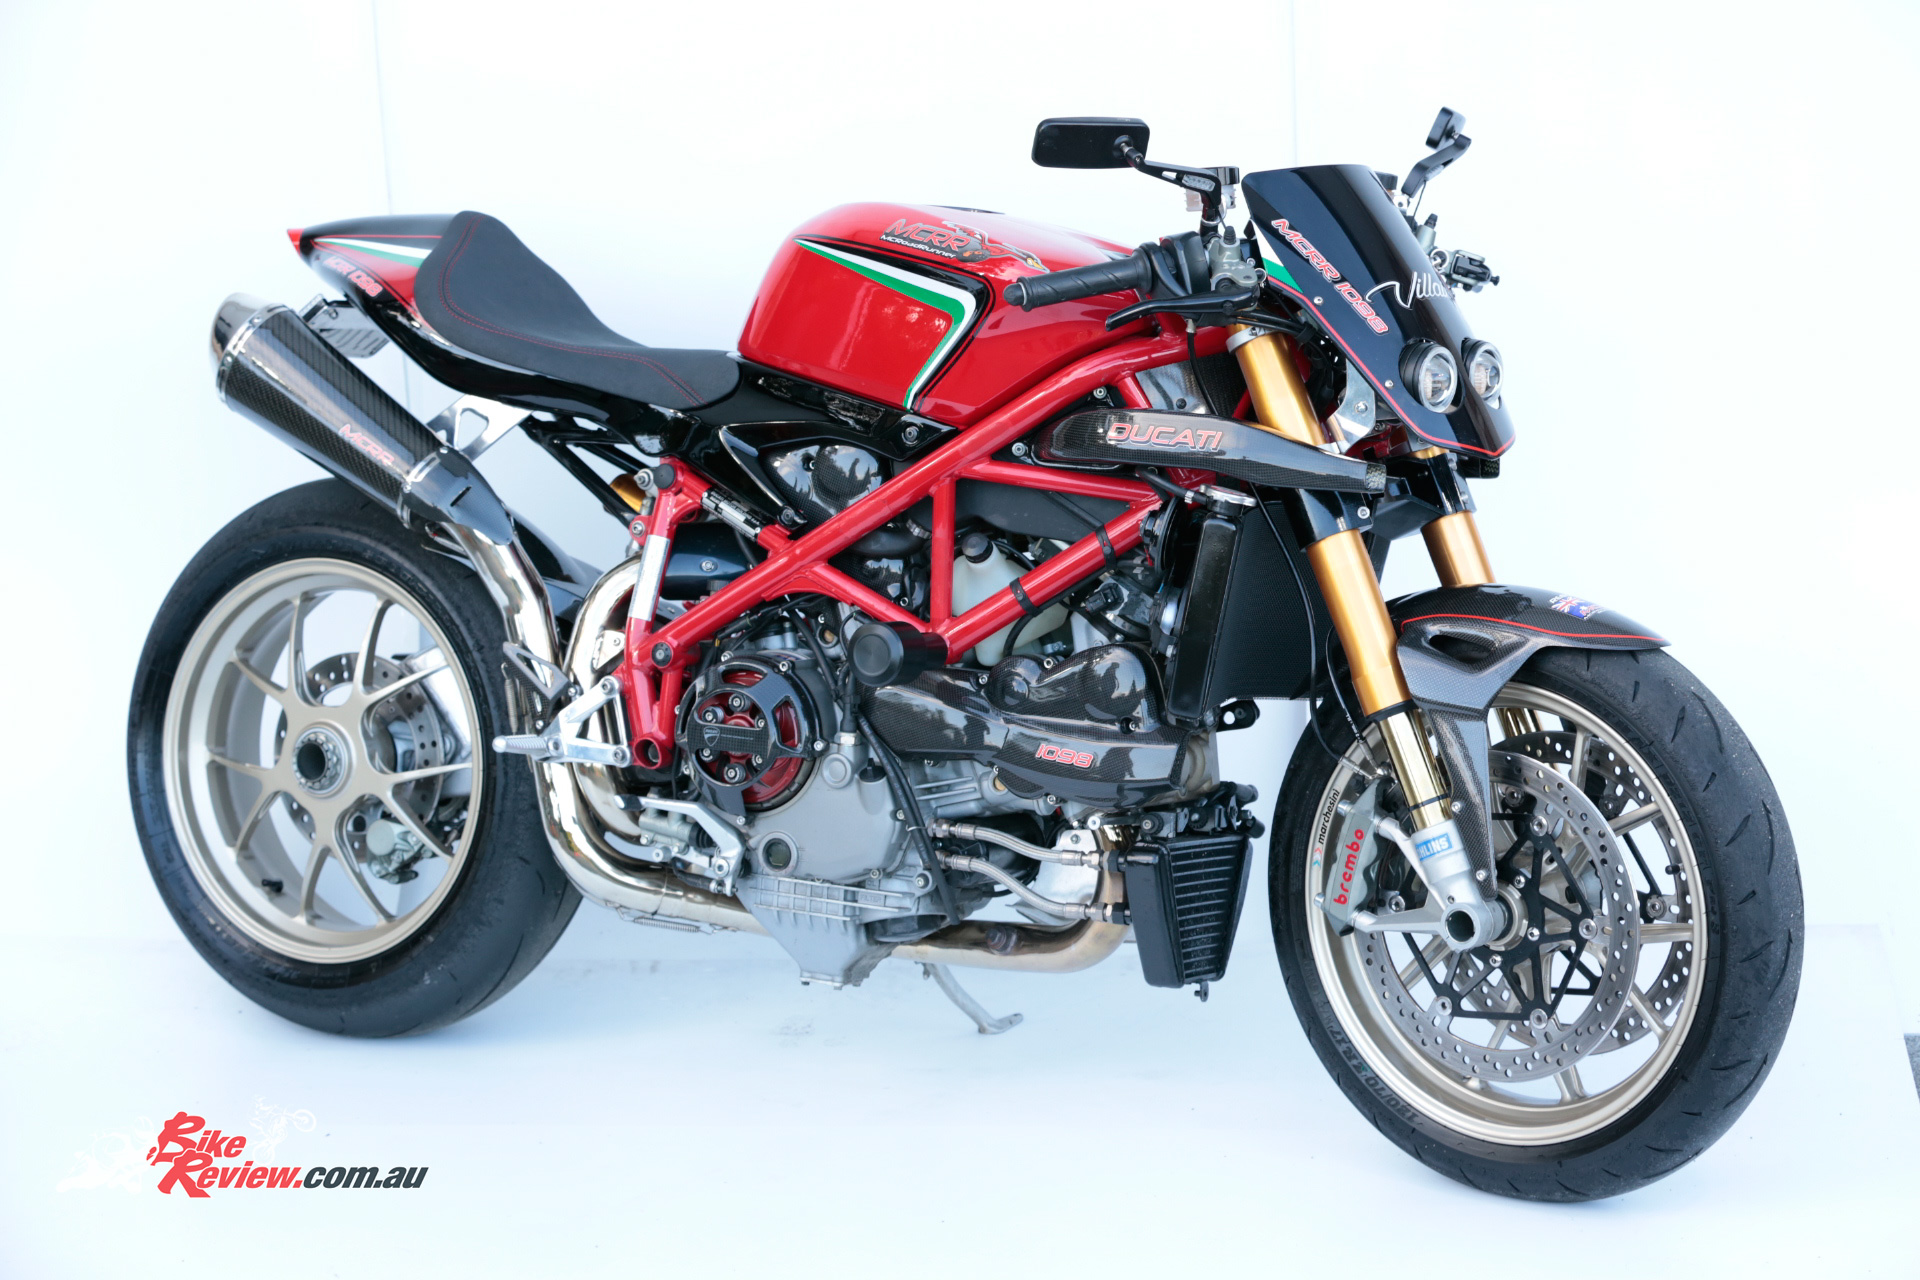 custom 1098 mc rr ducati 39 fighter bike review. Black Bedroom Furniture Sets. Home Design Ideas